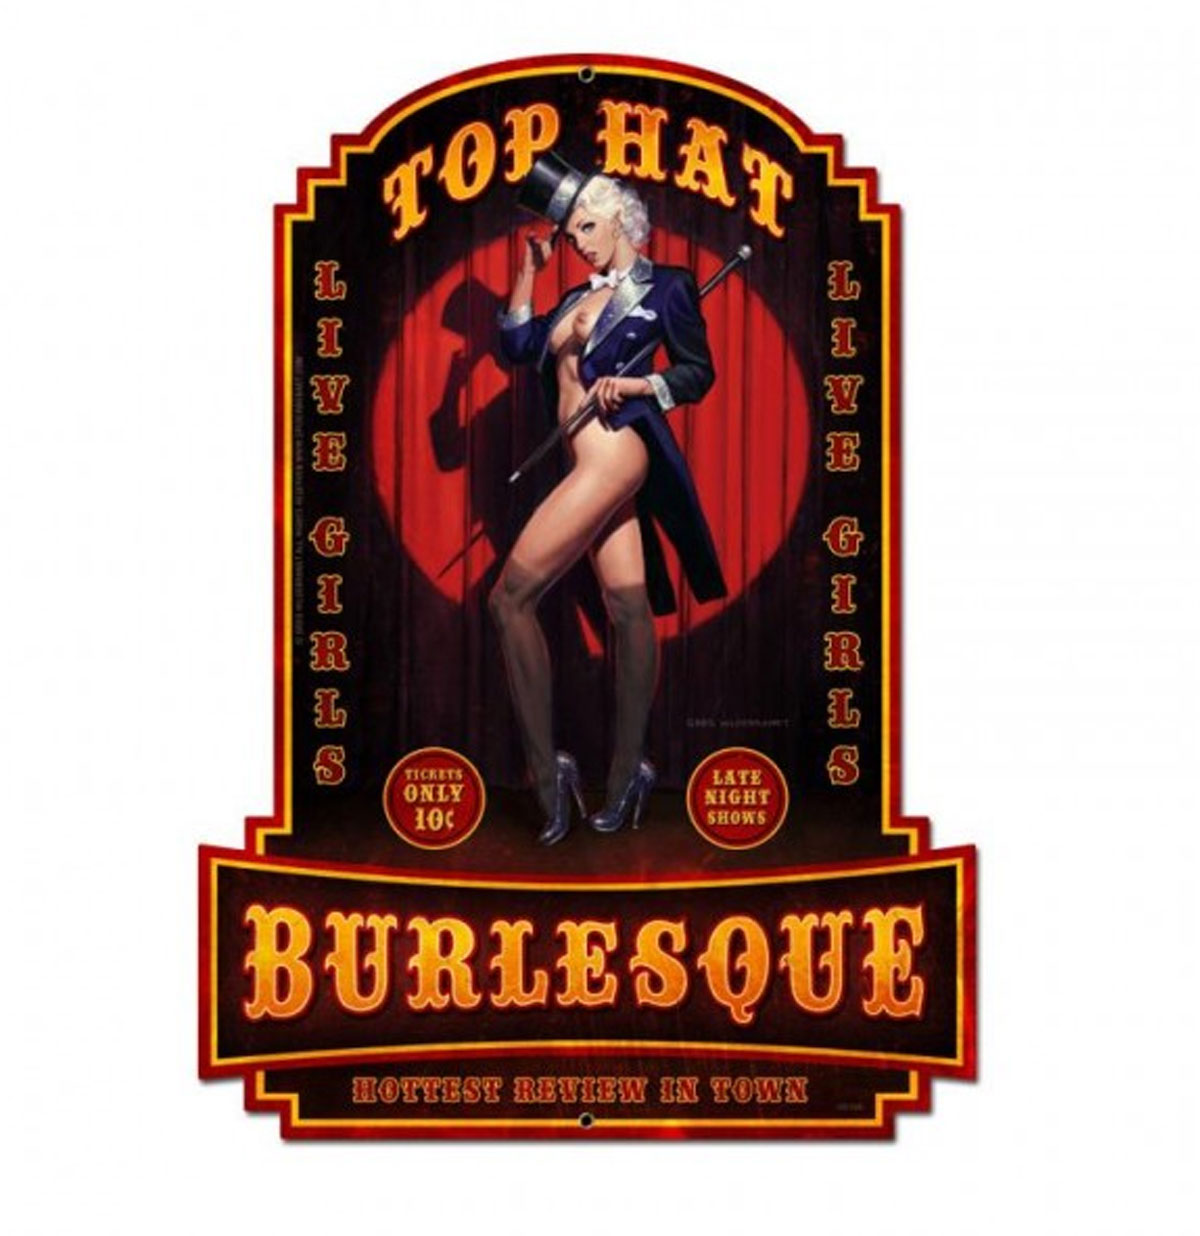 Top Hat Burlesque Pin-Up Zwaar Metalen Decoratie Bord Greg Hildebrandt